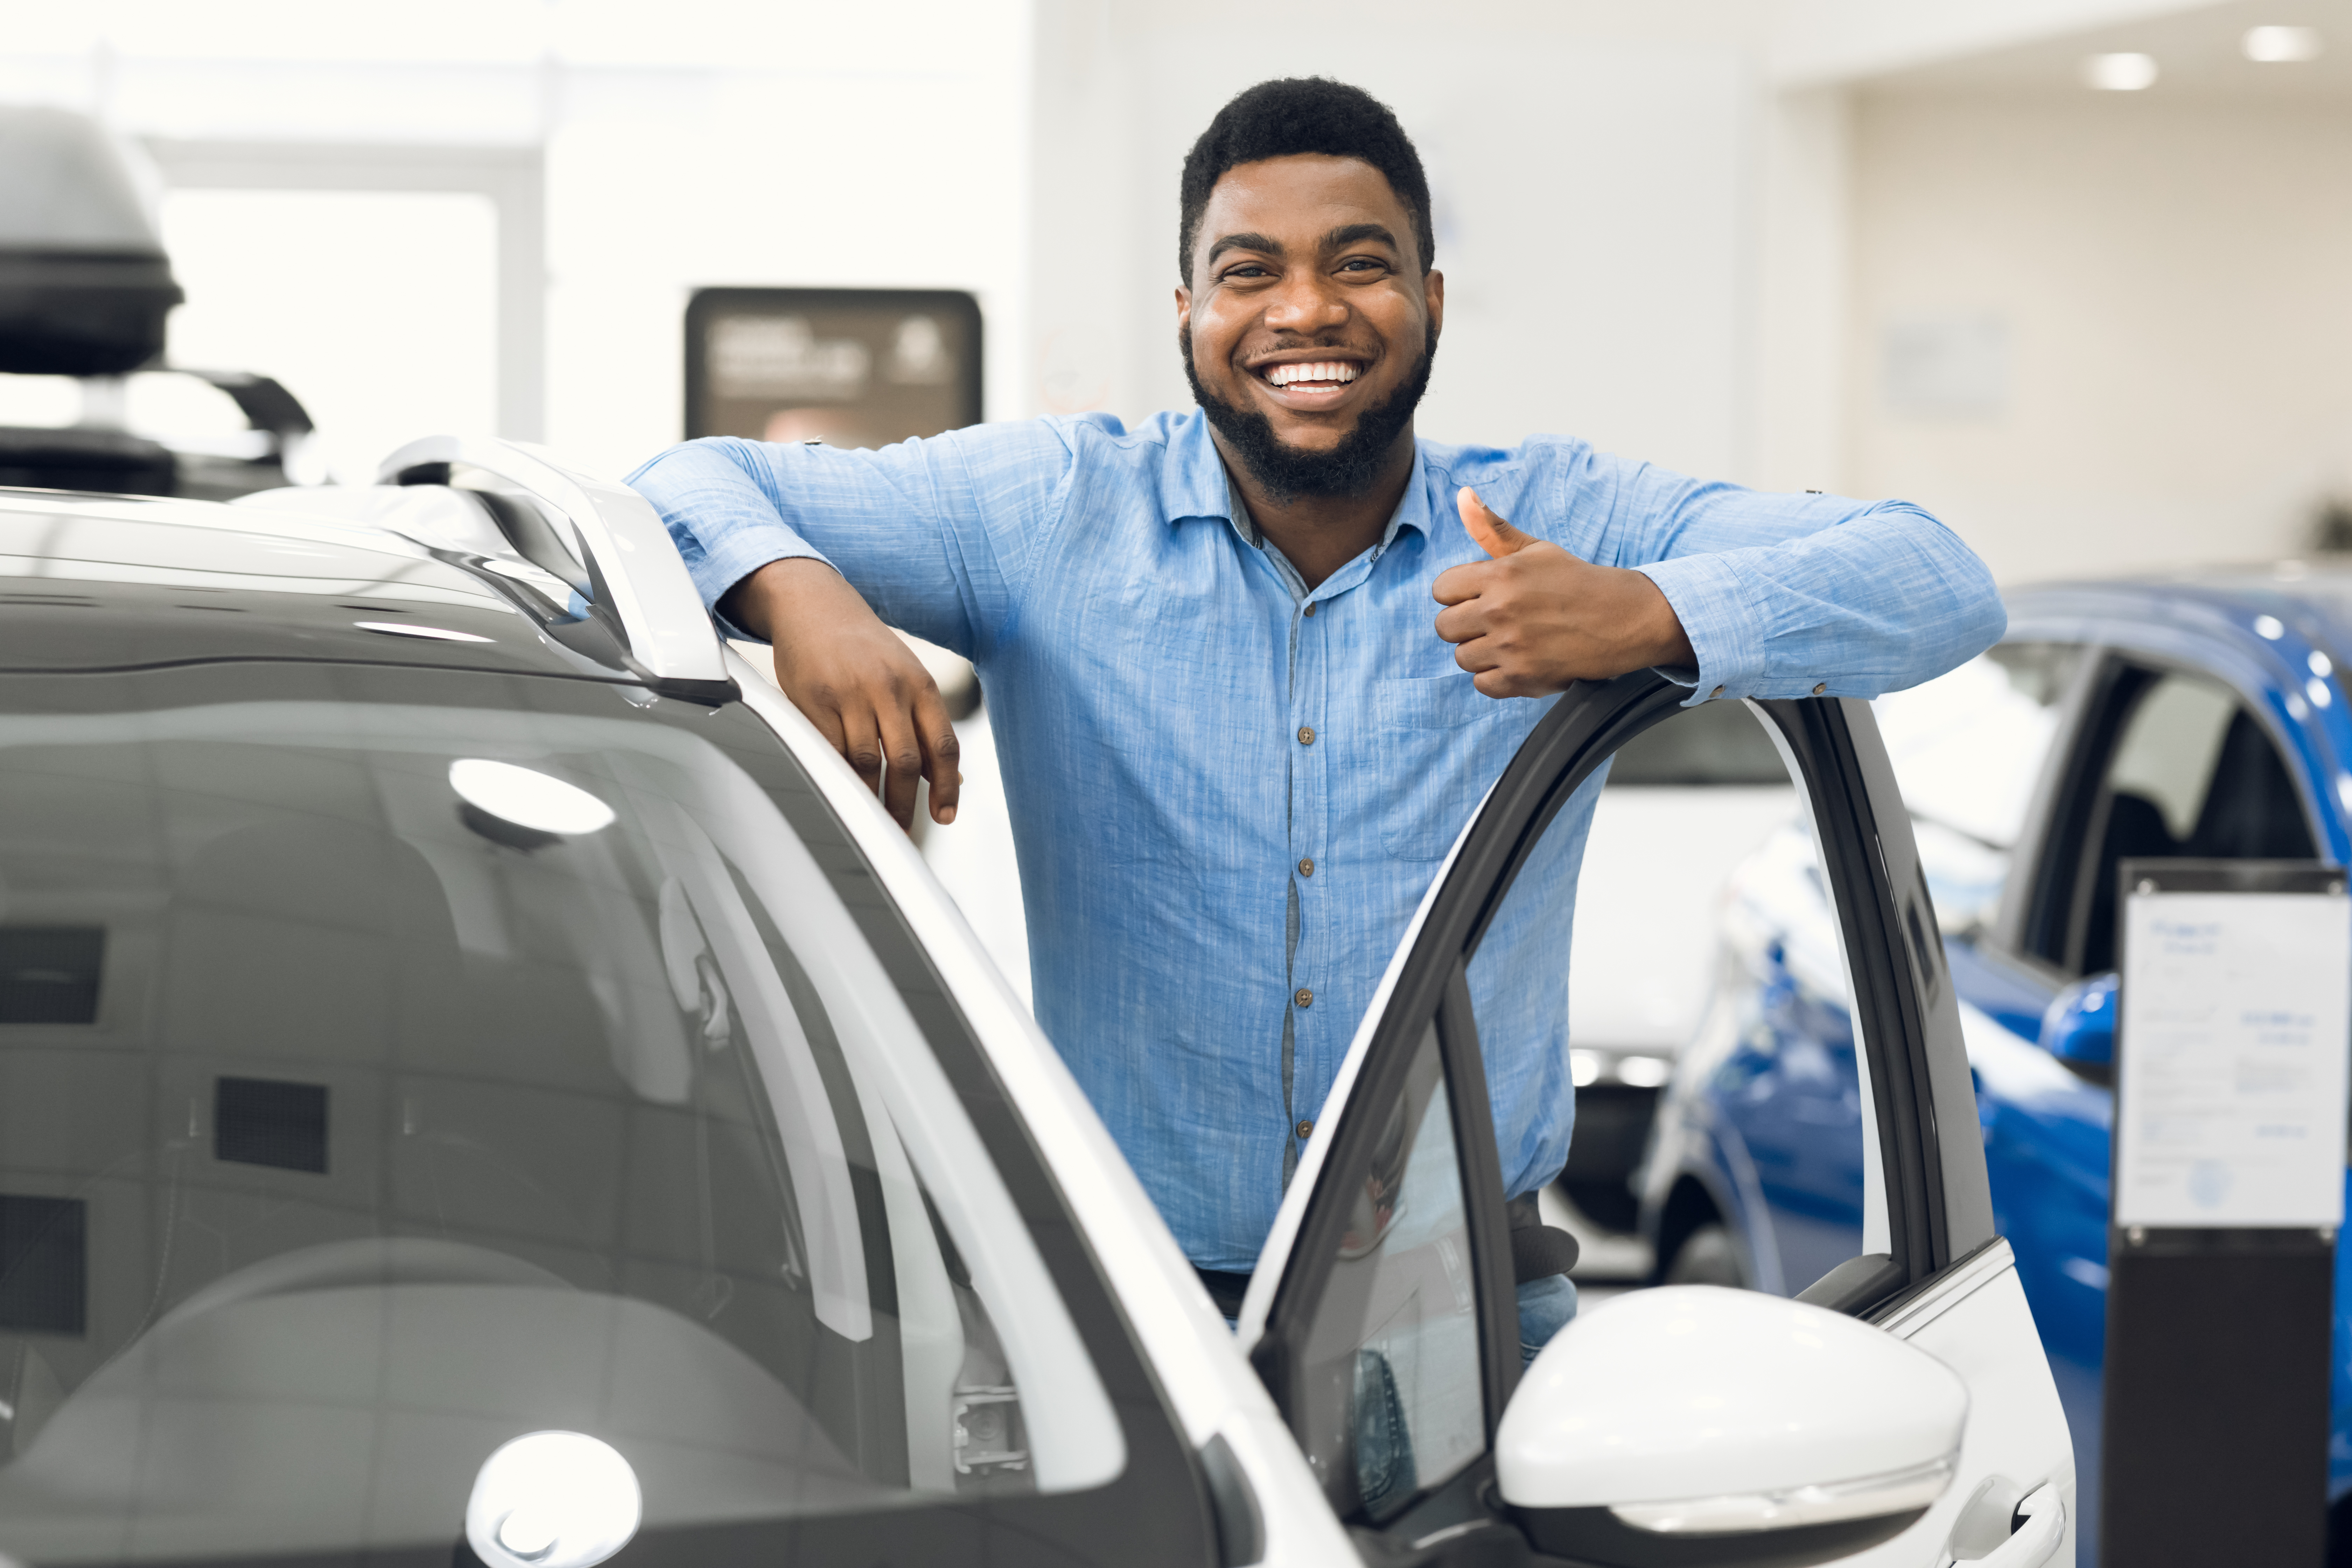 african-man-gesturing-thumbs-up-approving-automobi-SHR6NRY-1